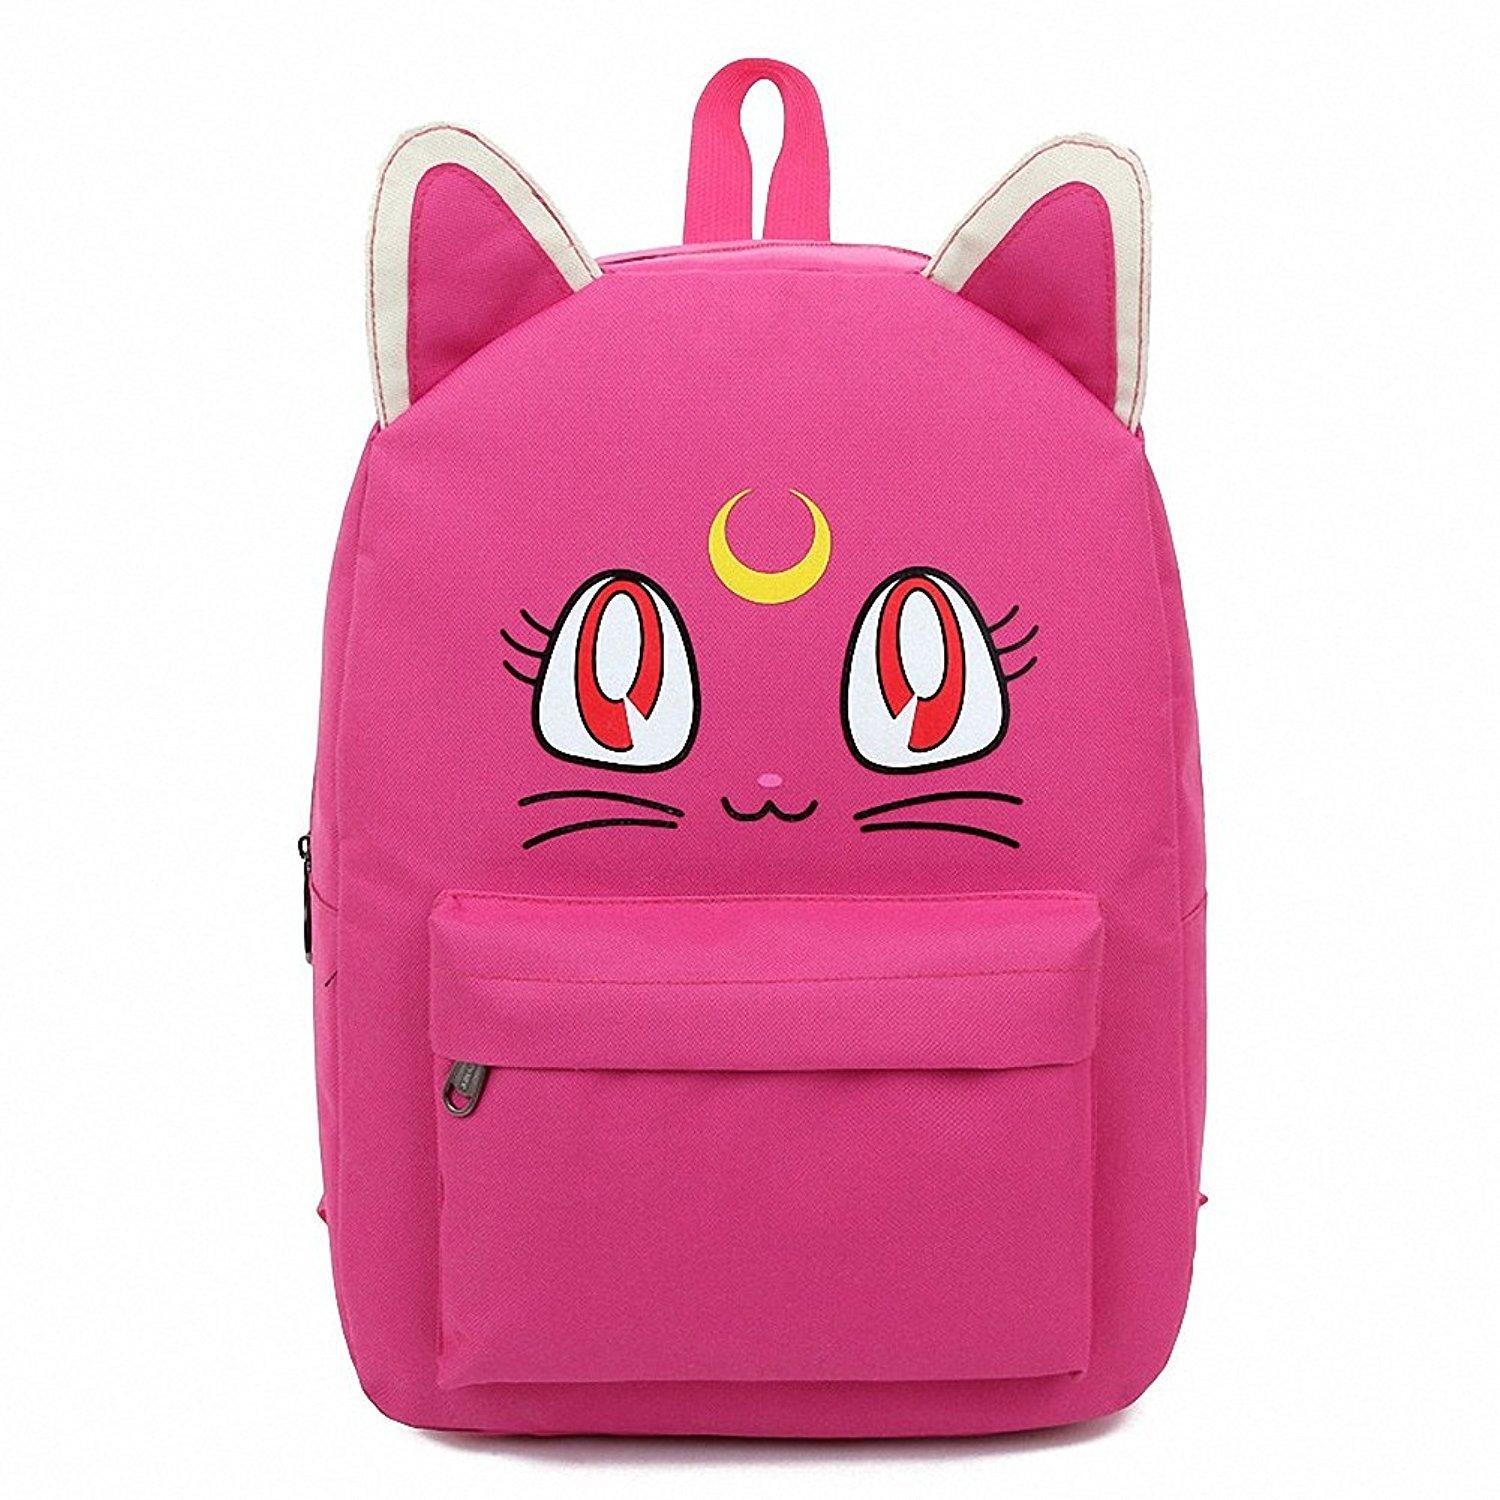 d564d5b08453 Get Quotations · Harajuku Style Sailor Moon Canvas Backpacks for Teenage  Girls School Bags Cute Fold Cat Book Bag